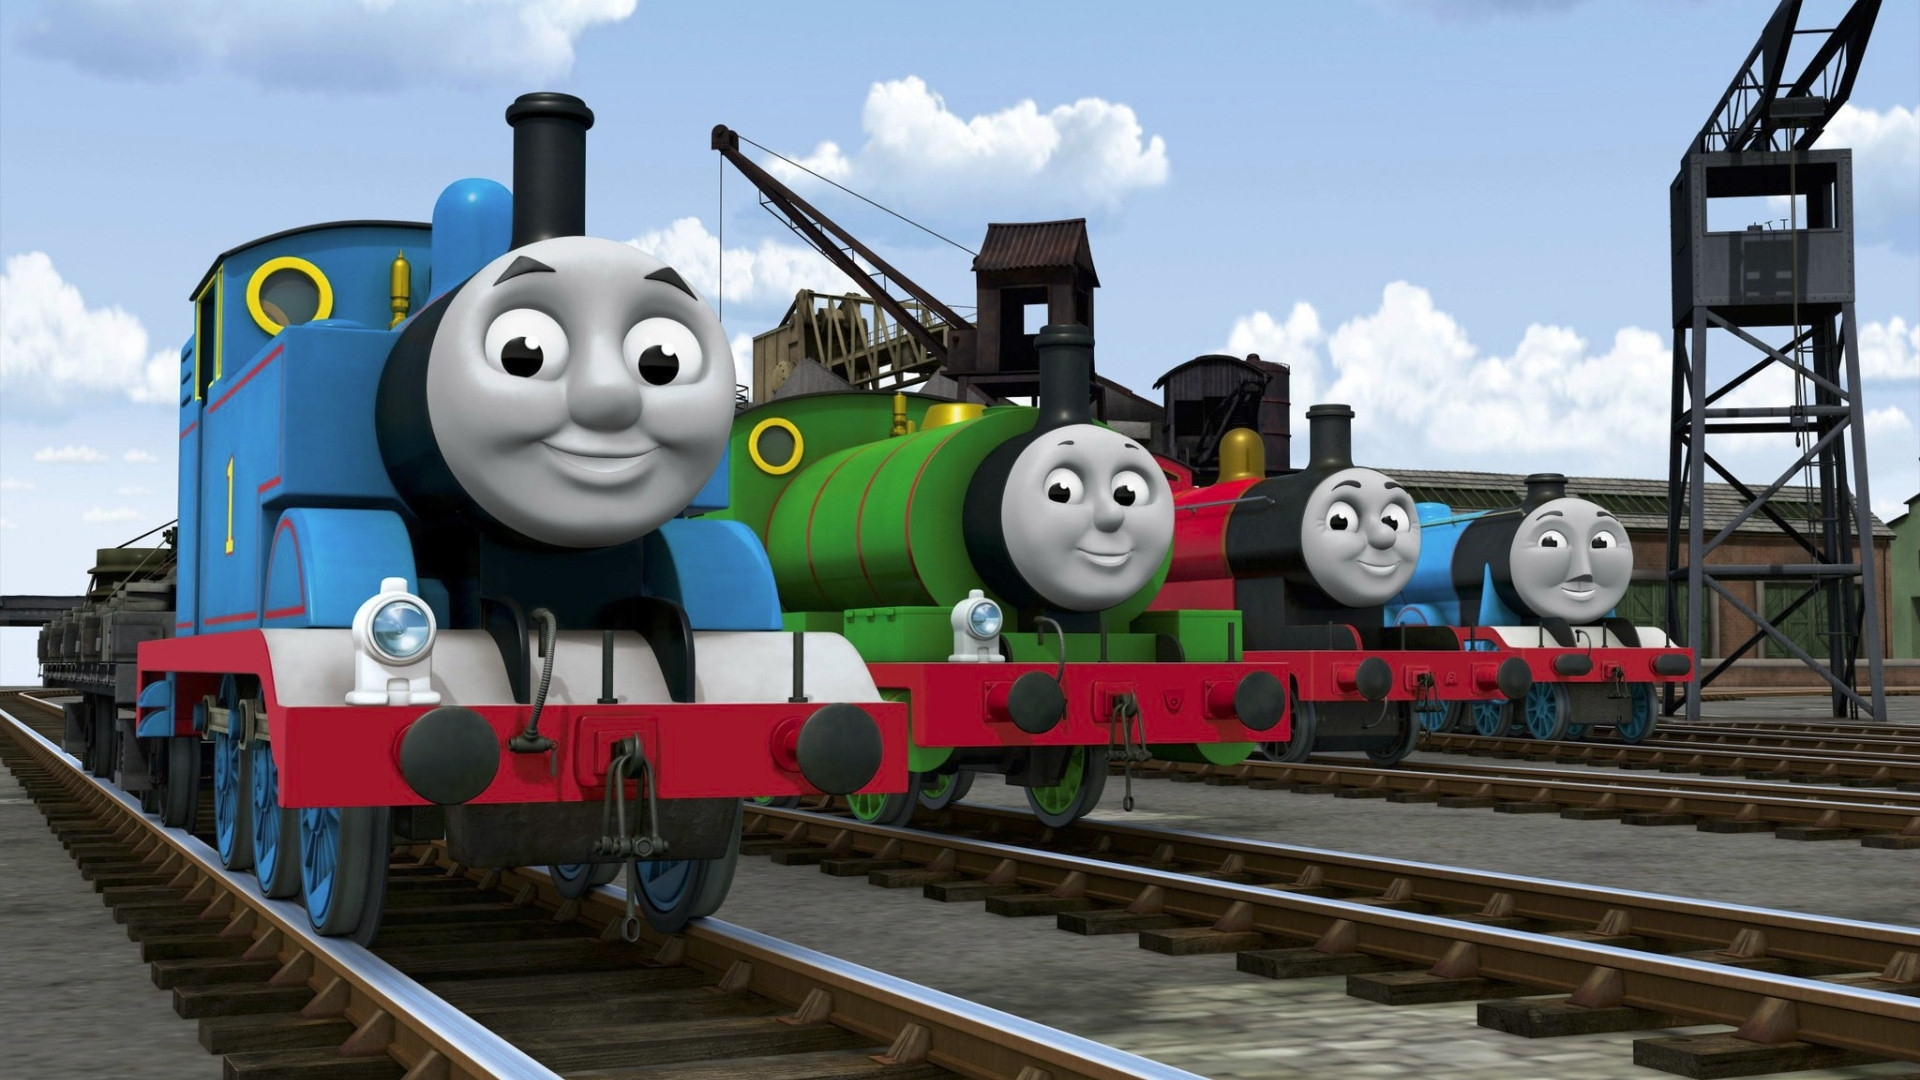 thomas and friends wallpapers group (49+)